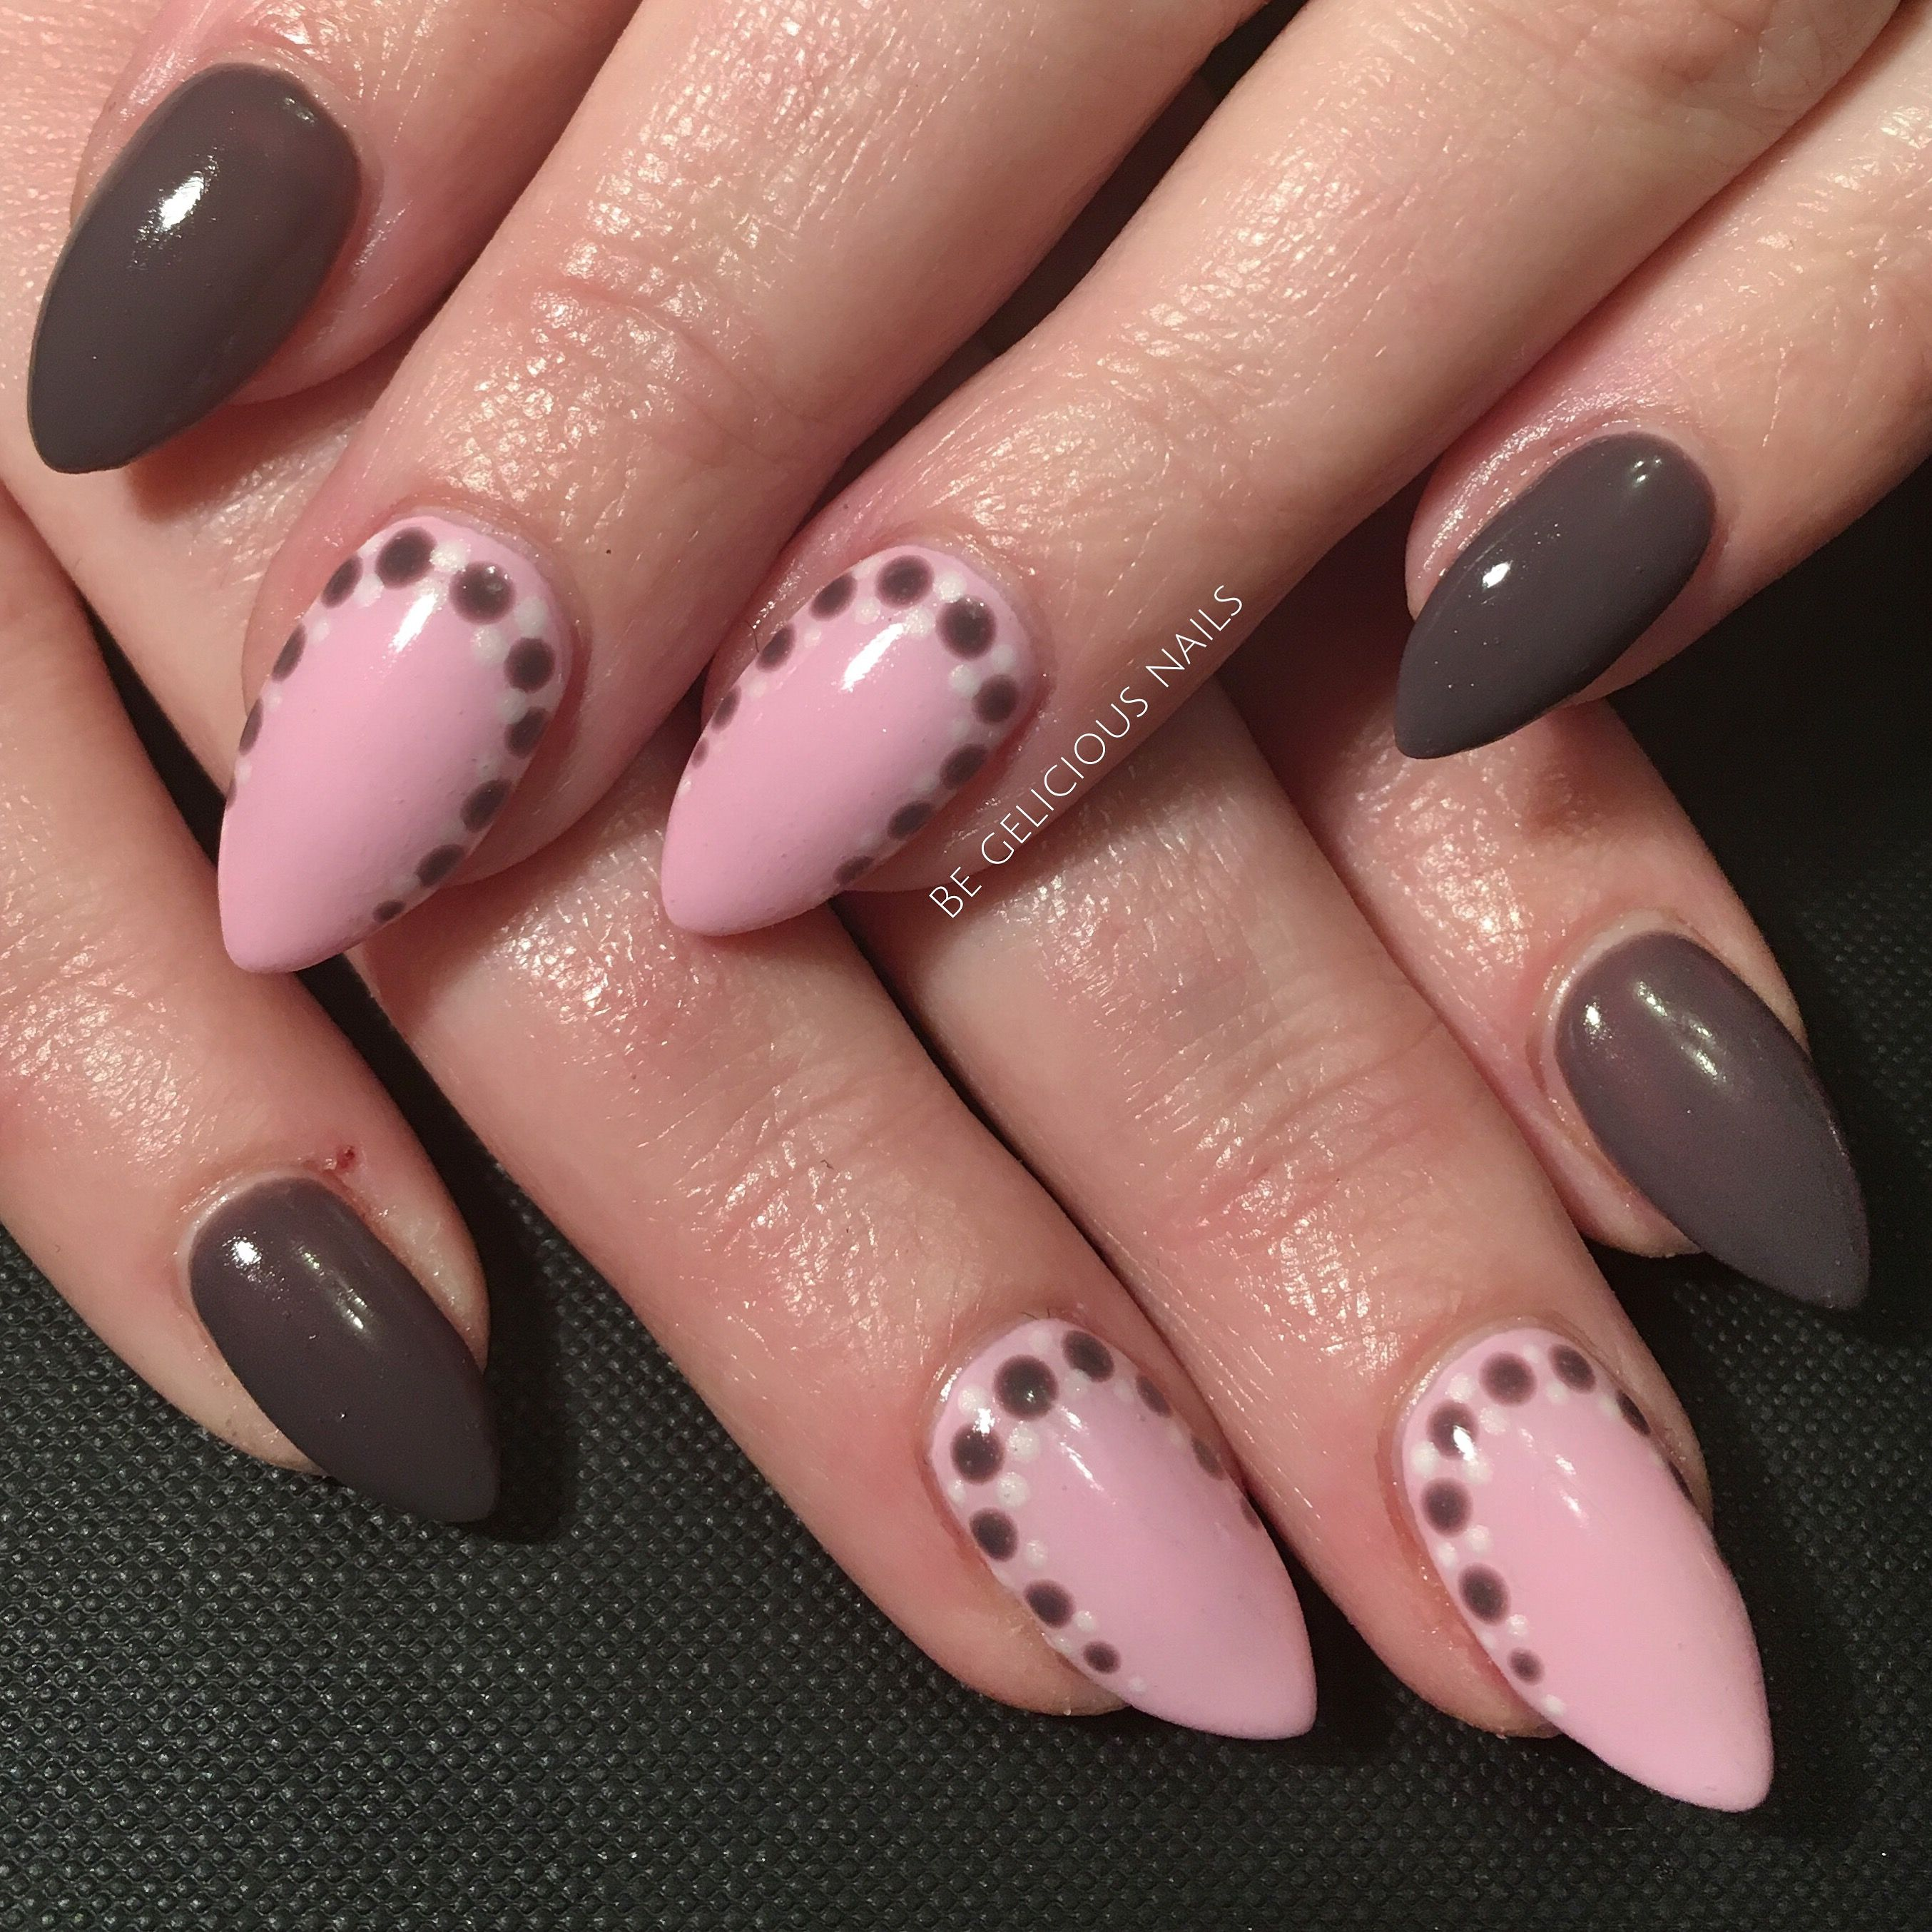 calgel nails, nail art, pink, brown, polka dots, nail design